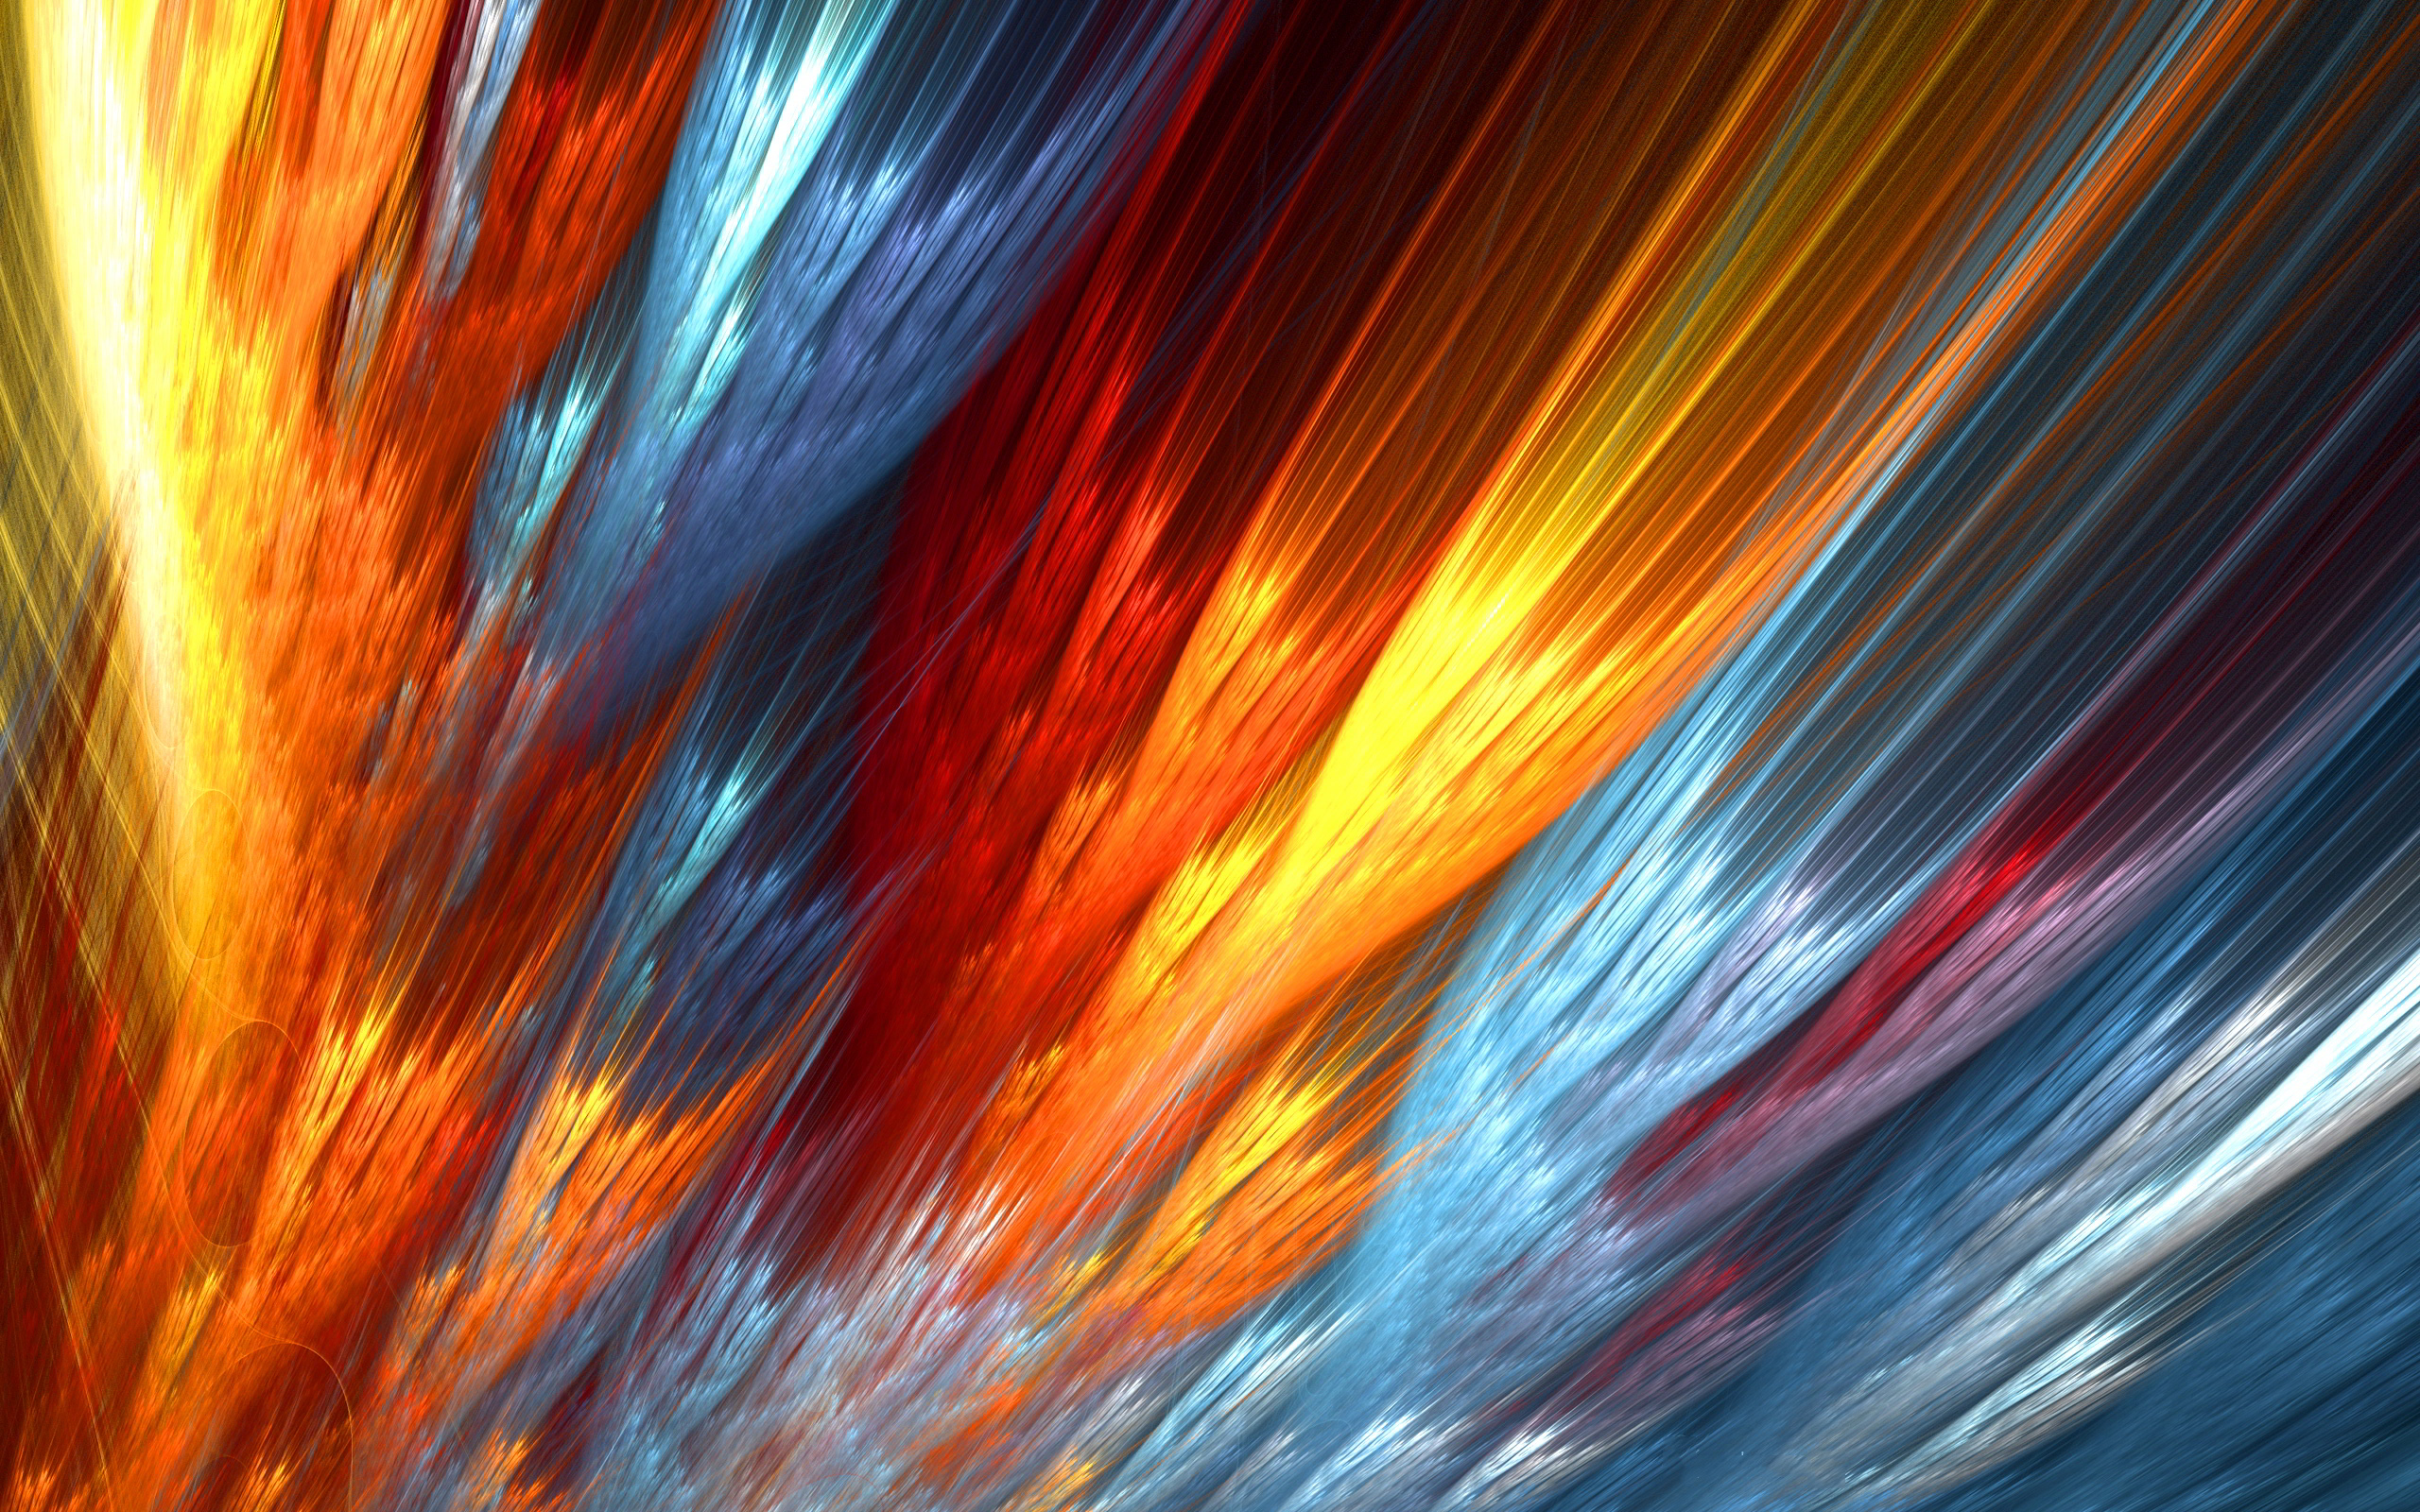 Abstract colorful fire